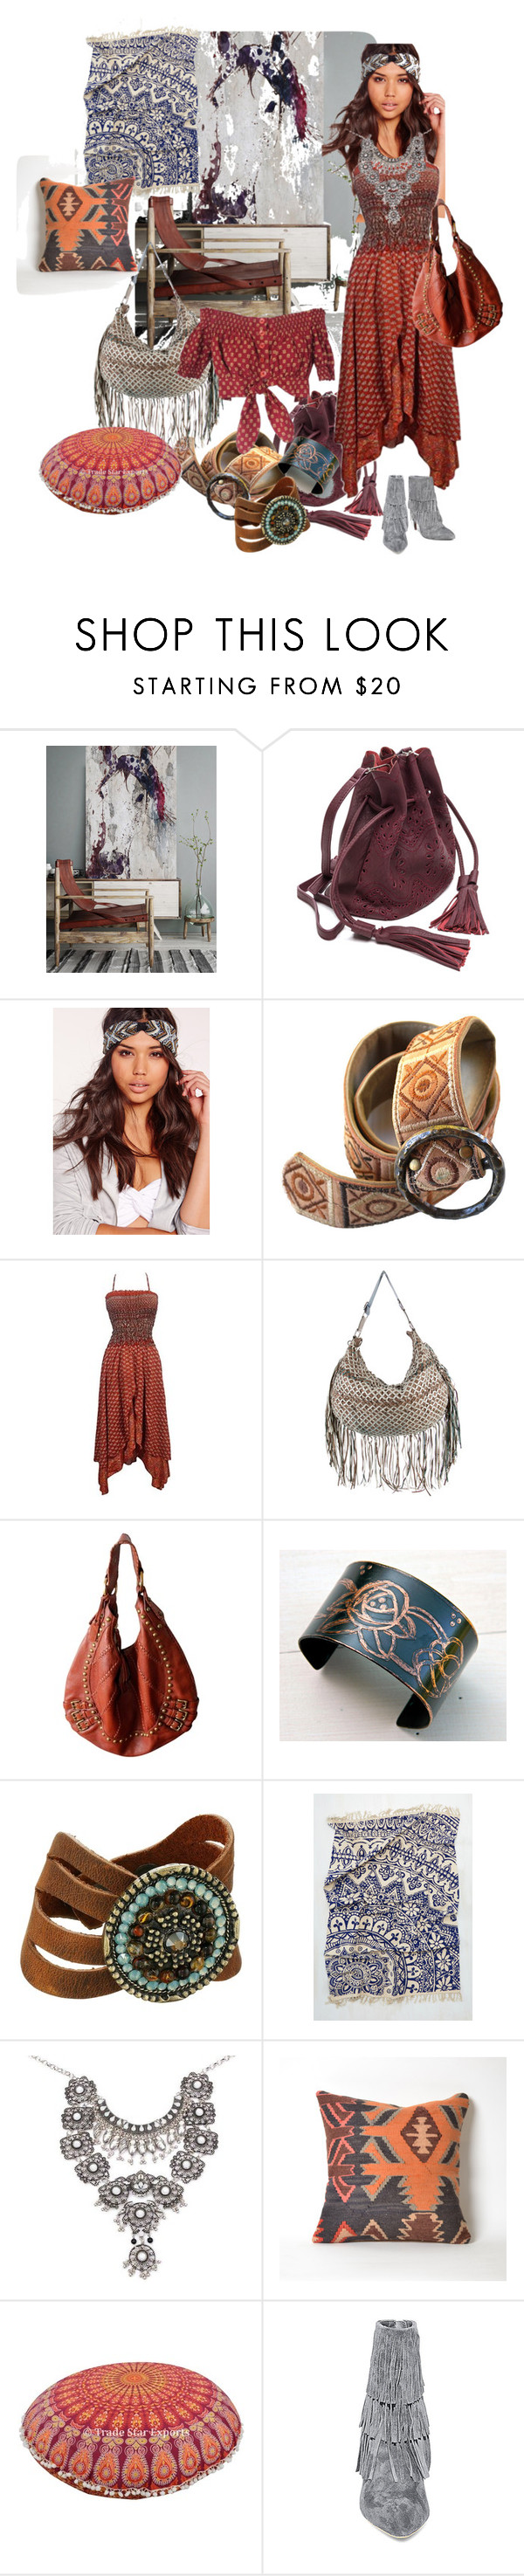 """""""Boho Inspired"""" by irenaorlov on Polyvore featuring Missguided, Marc Jacobs, Isabella Fiore, Gipsy, Leatherock, Steve Madden, boho, Bohemian and gypsy"""